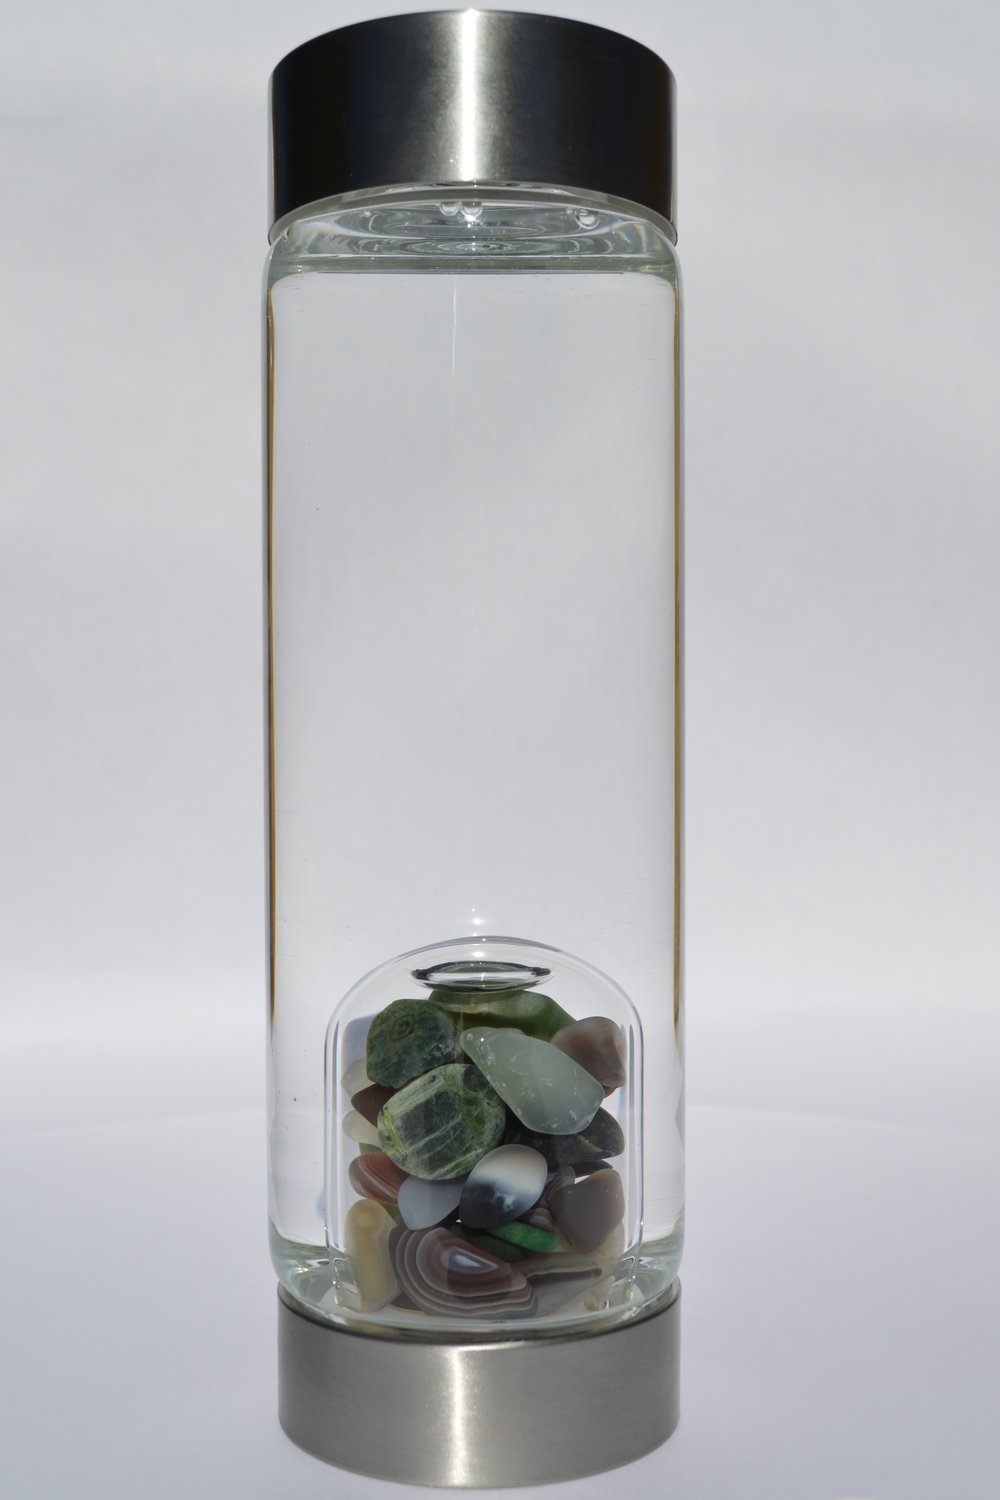 VitaJuwel ViA Crystal Balance - Security $184